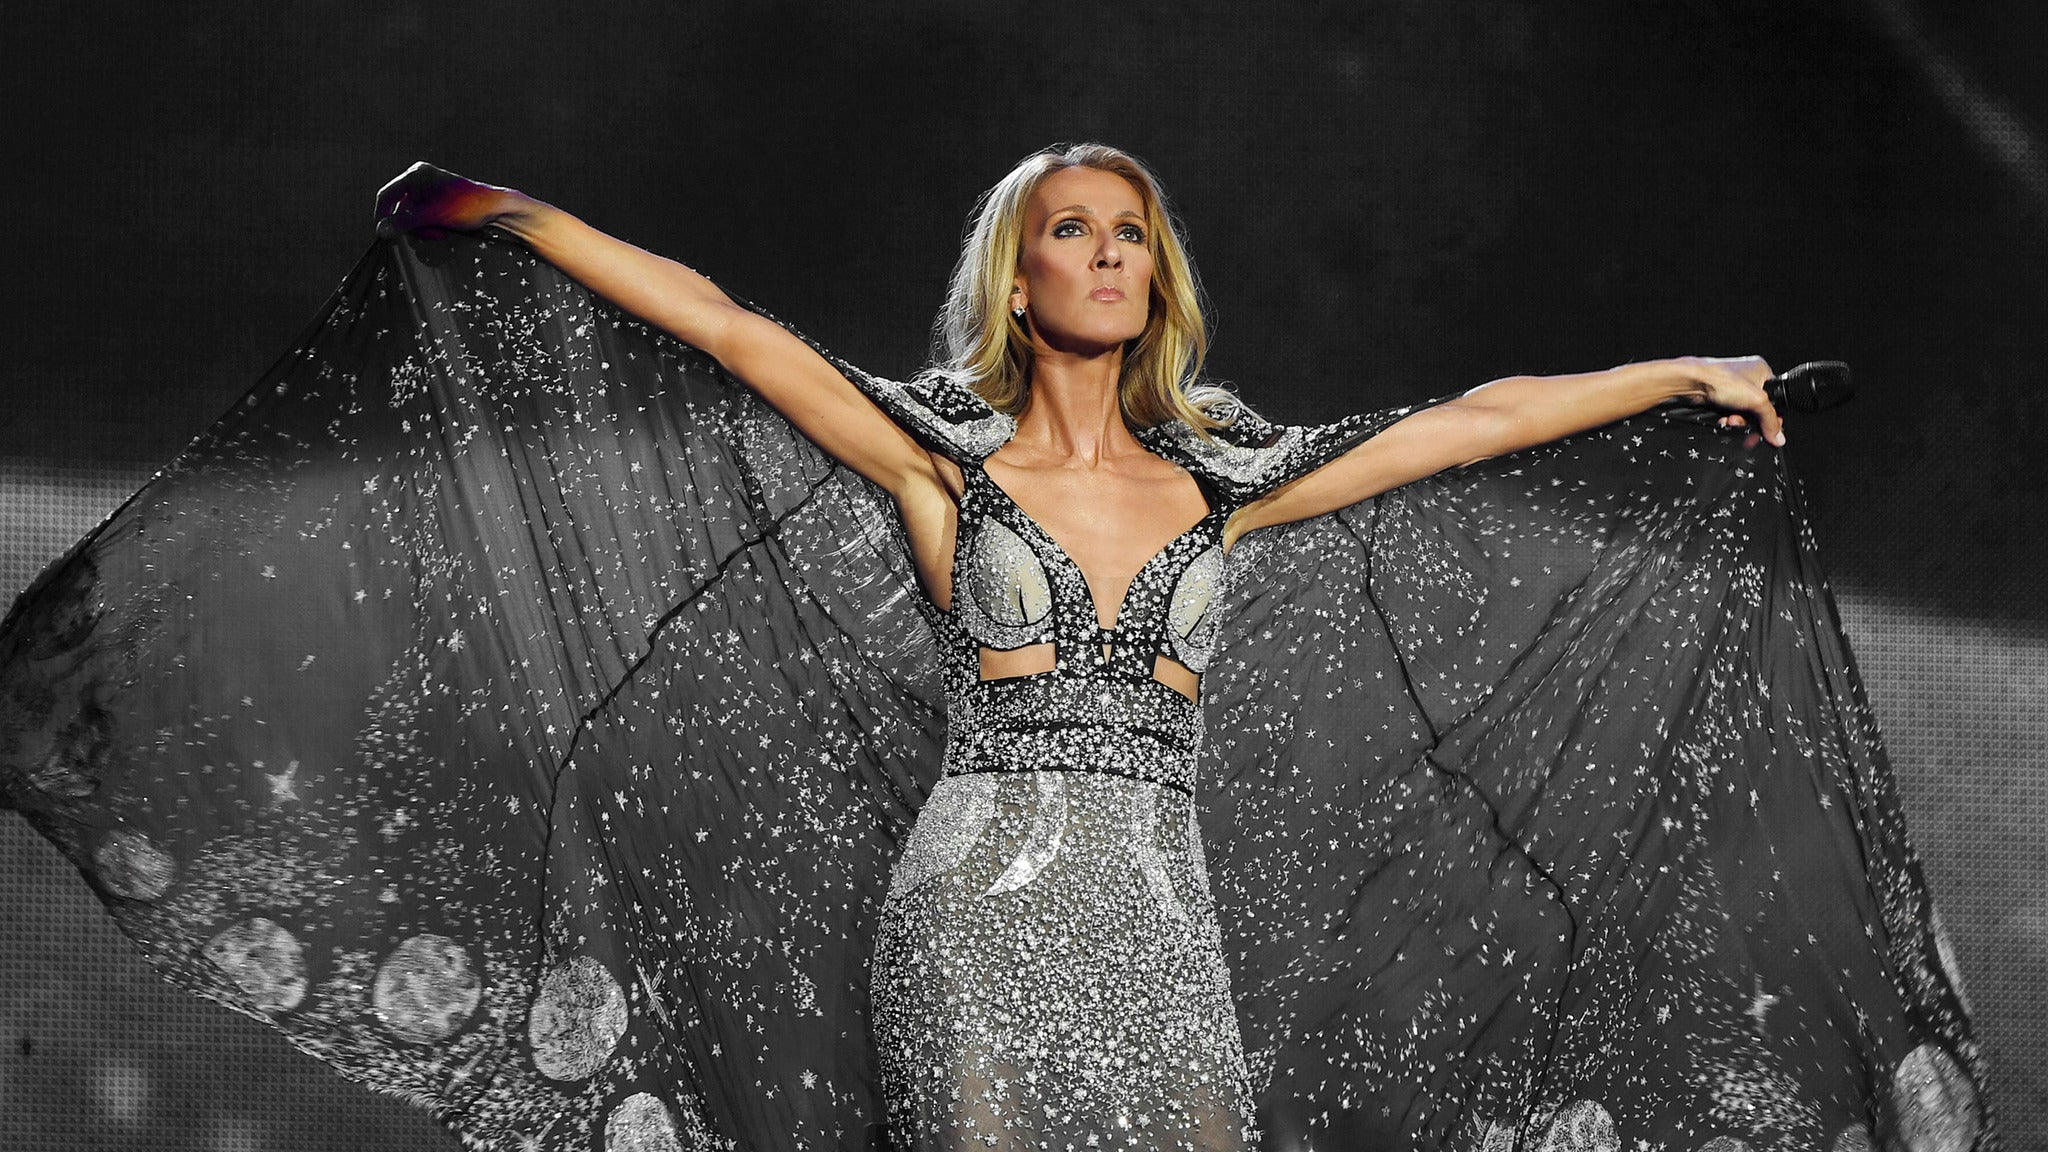 Celine Dion: Courage World Tour at Capital One Arena - Washington, DC 20004